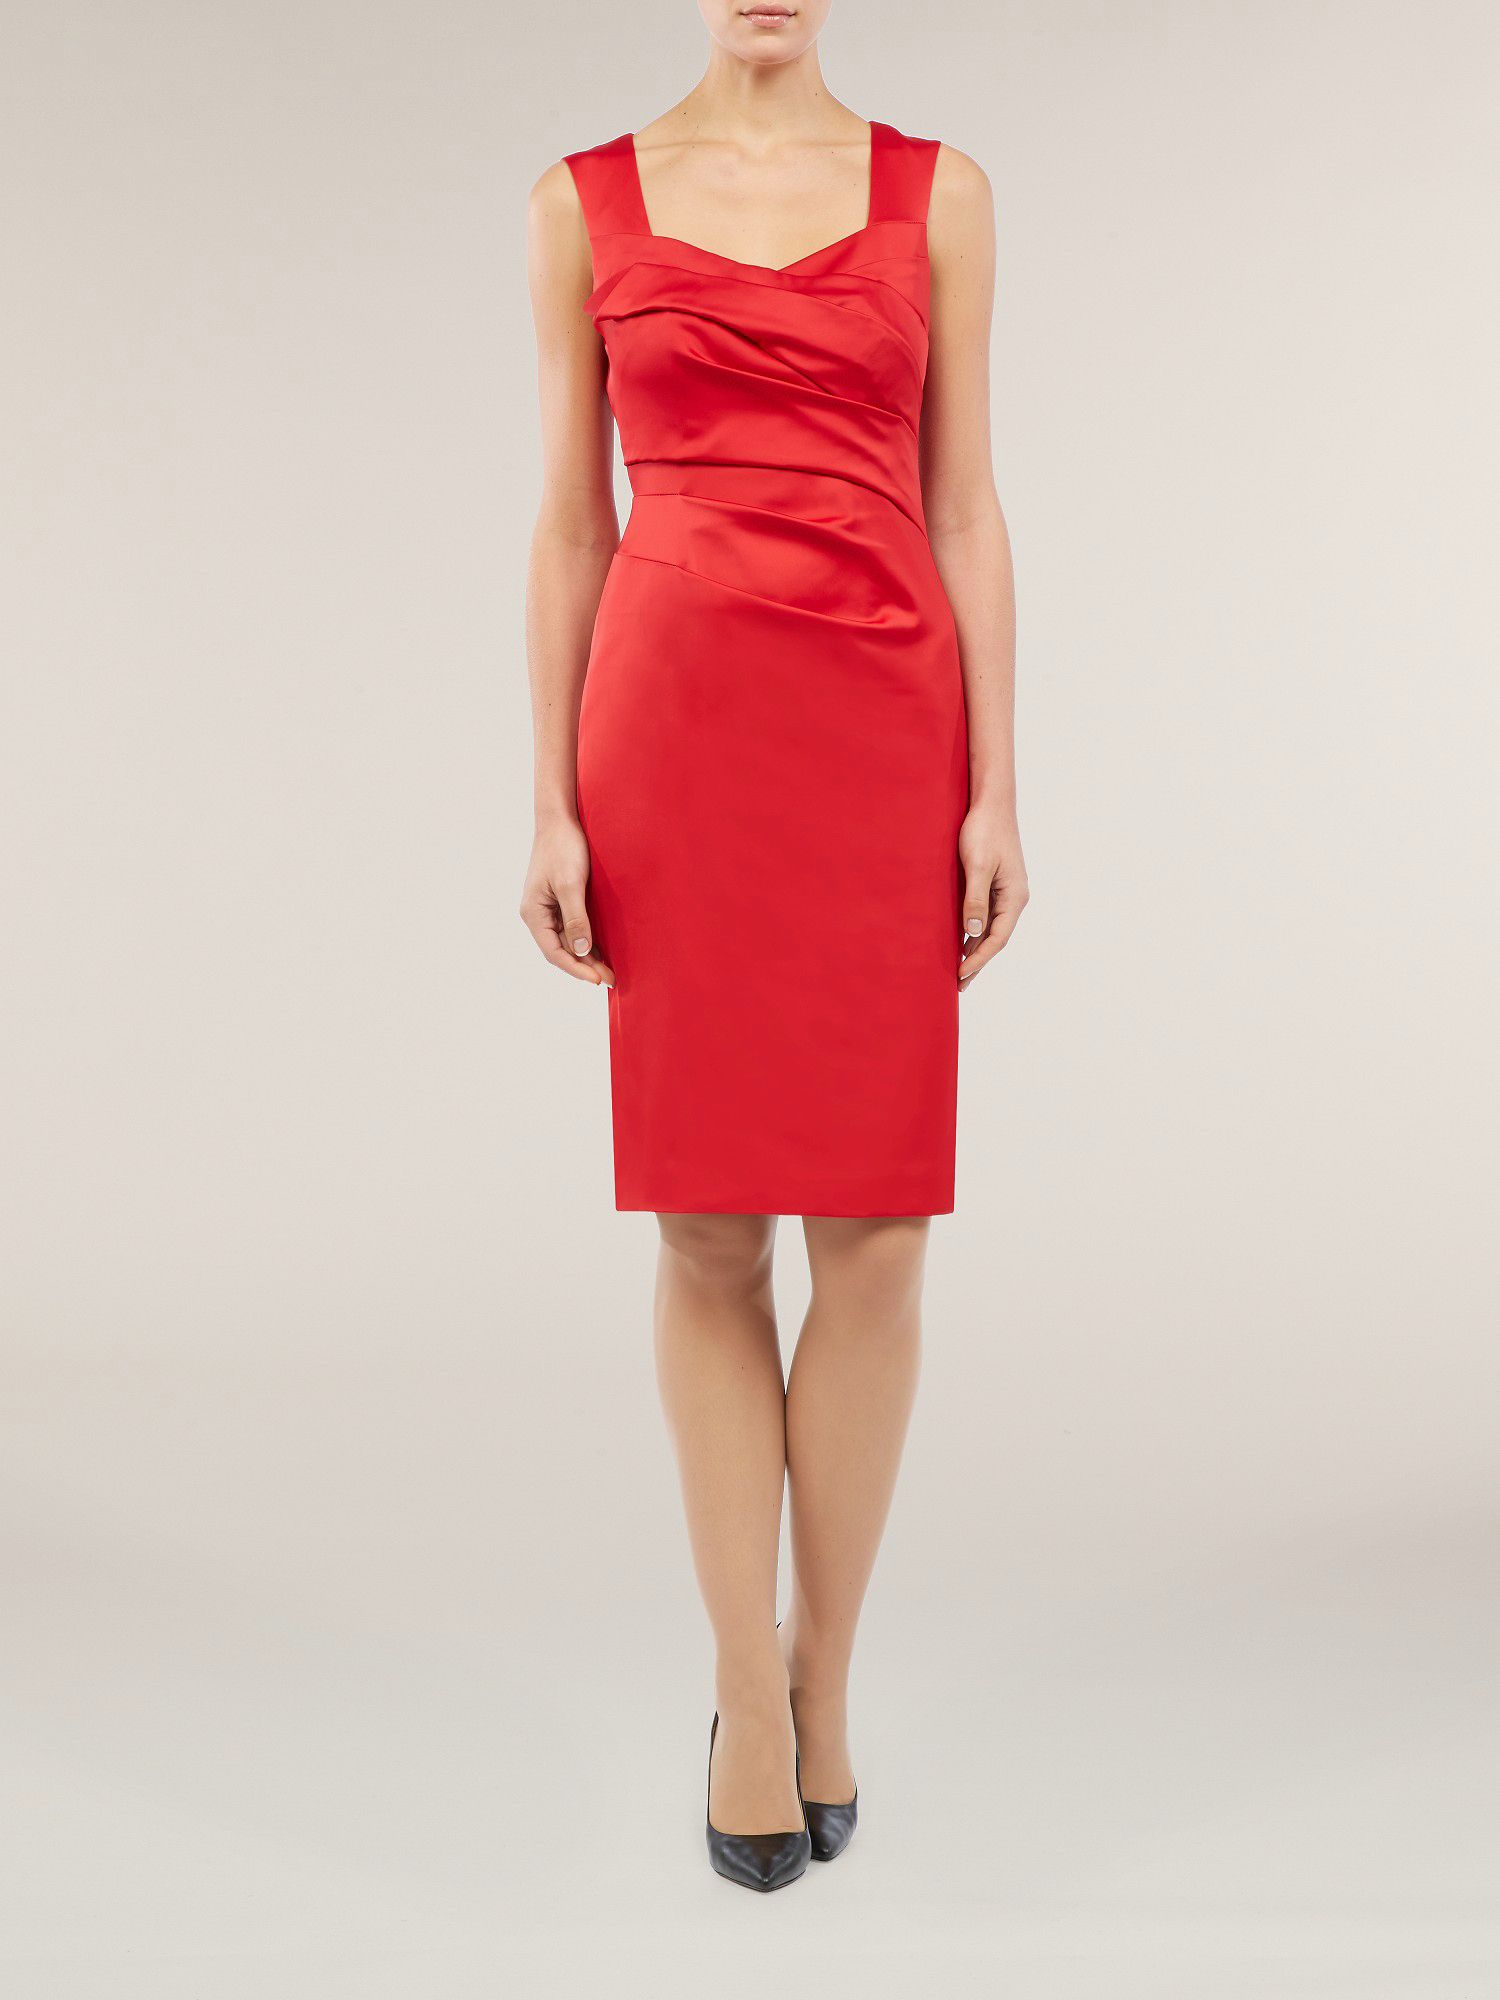 Red sexy sateen dress